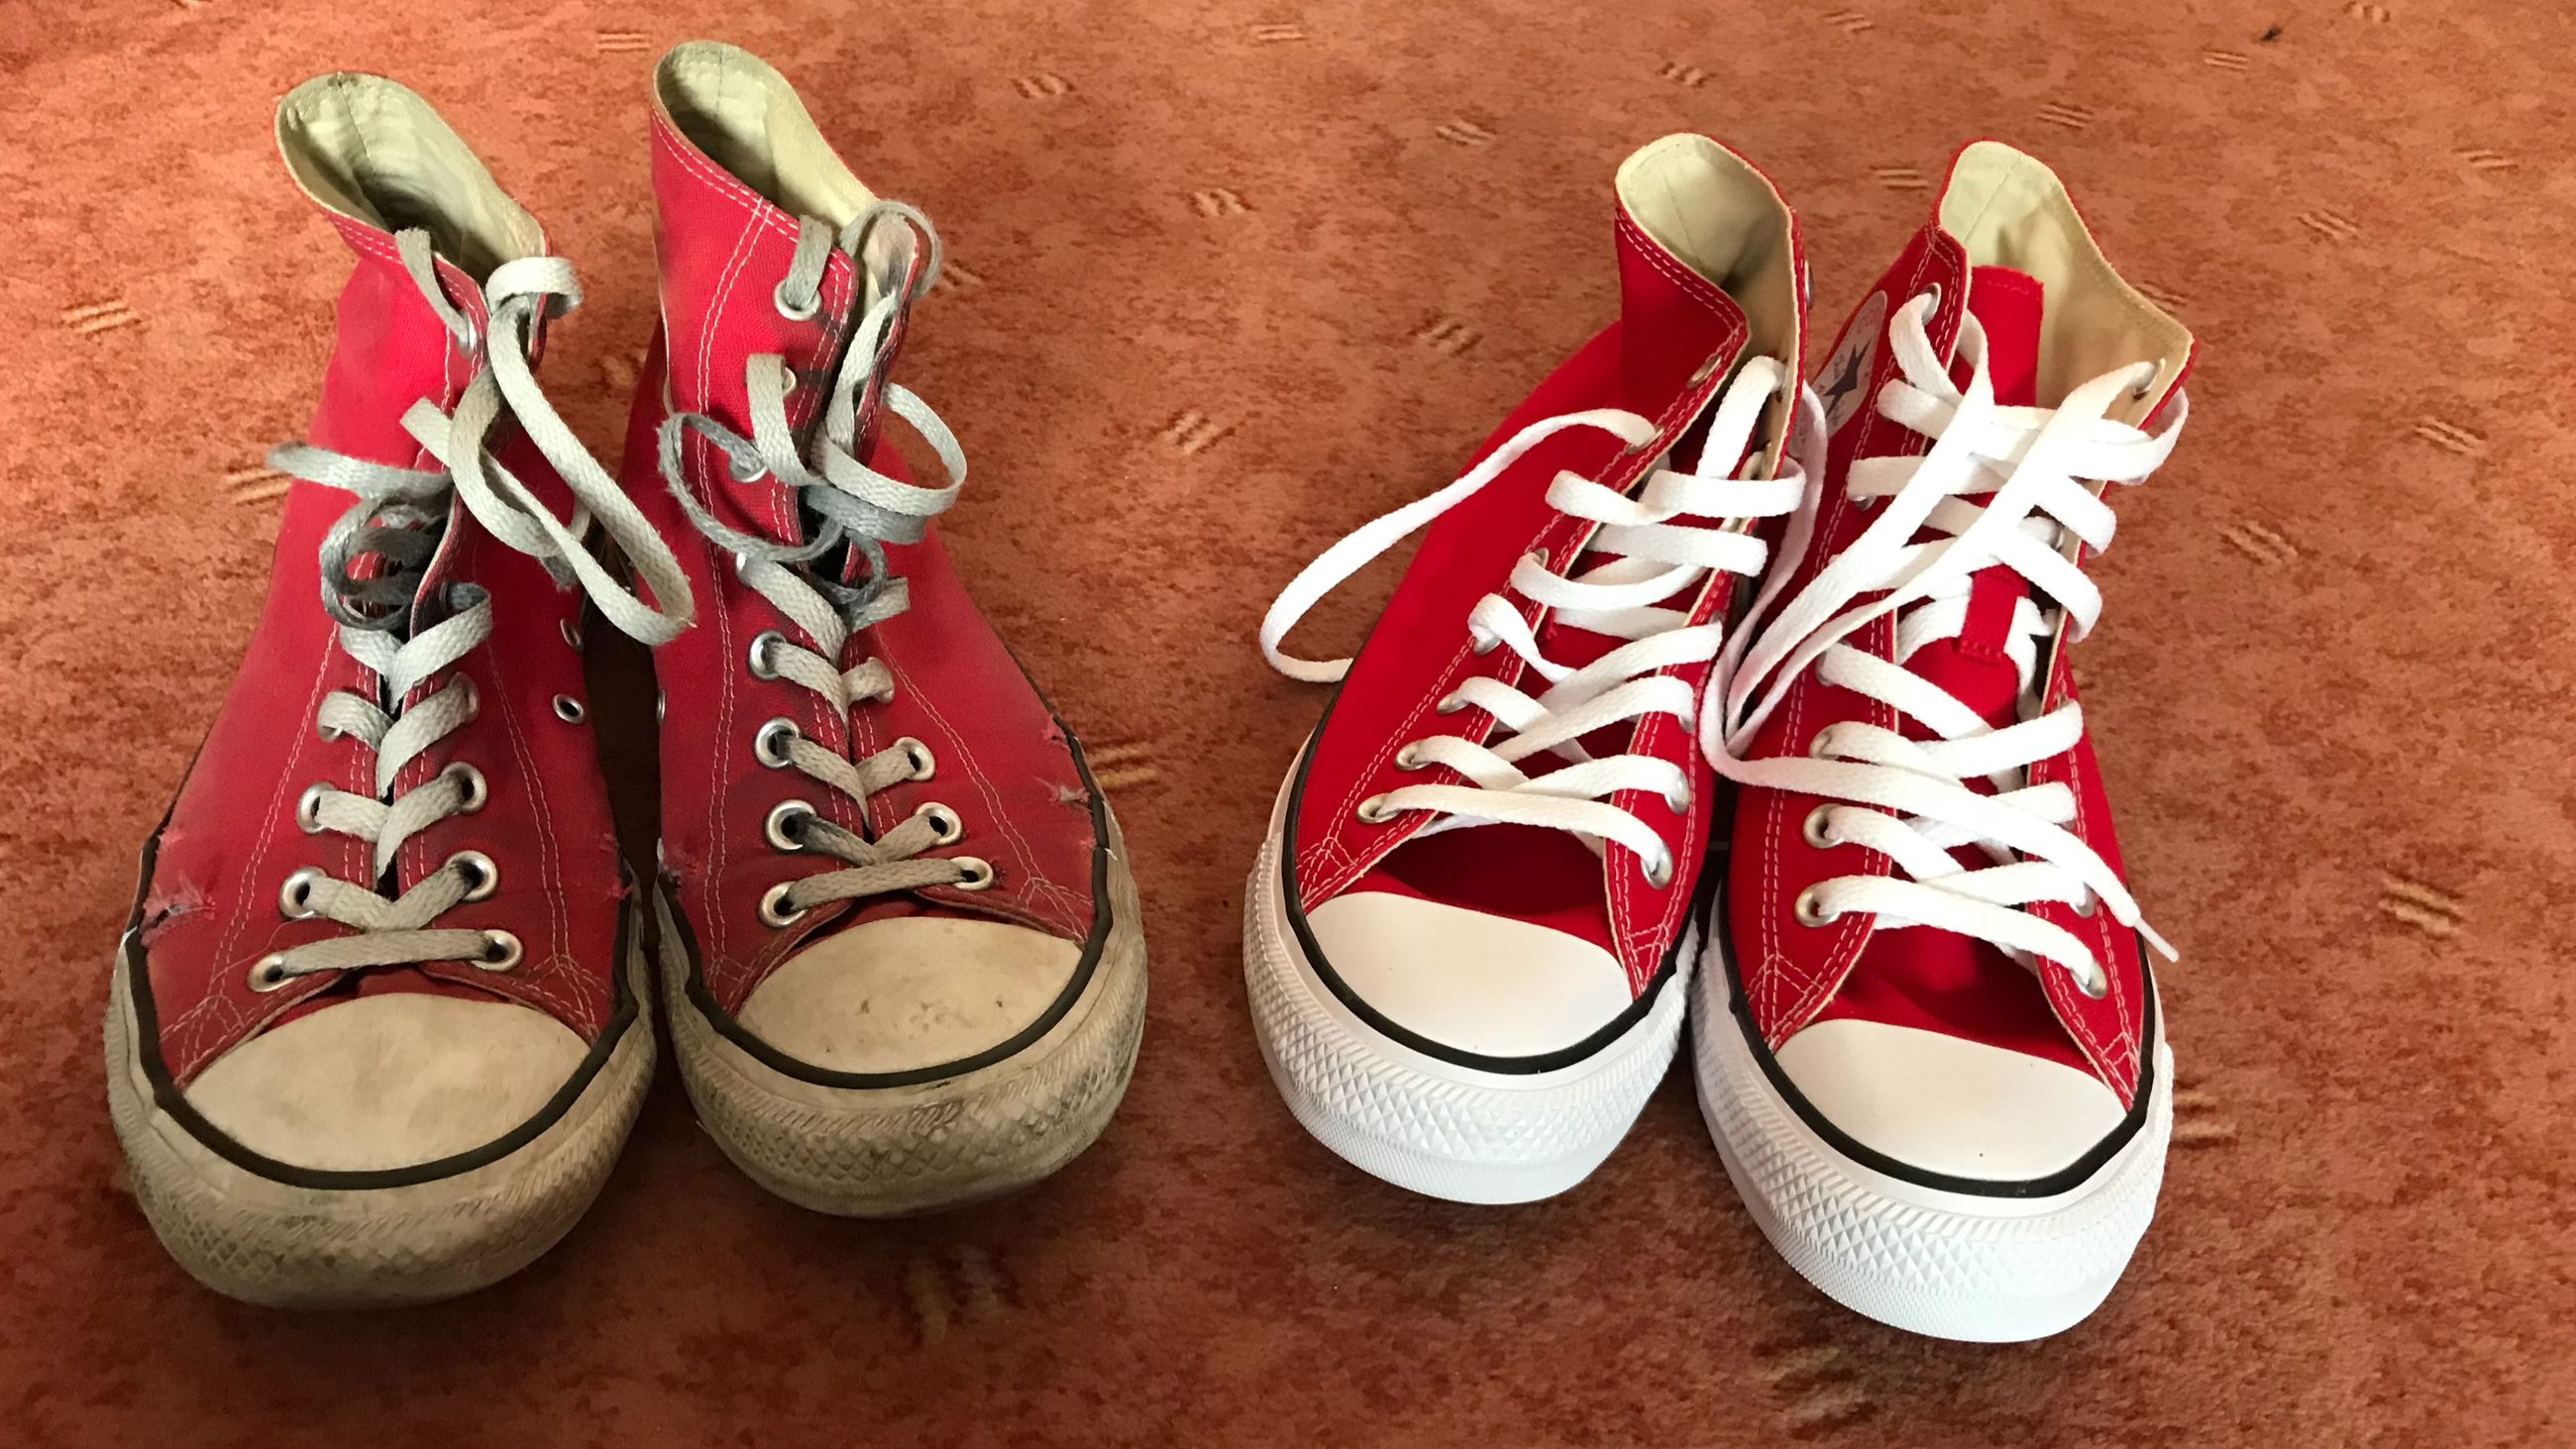 shoe, pair, still life, indoors, no people, red, close-up, canvas shoe, choice, variation, shoelace, high angle view, group of objects, fashion, compatibility, colored background, side by side, table, white color, directly above, personal accessory